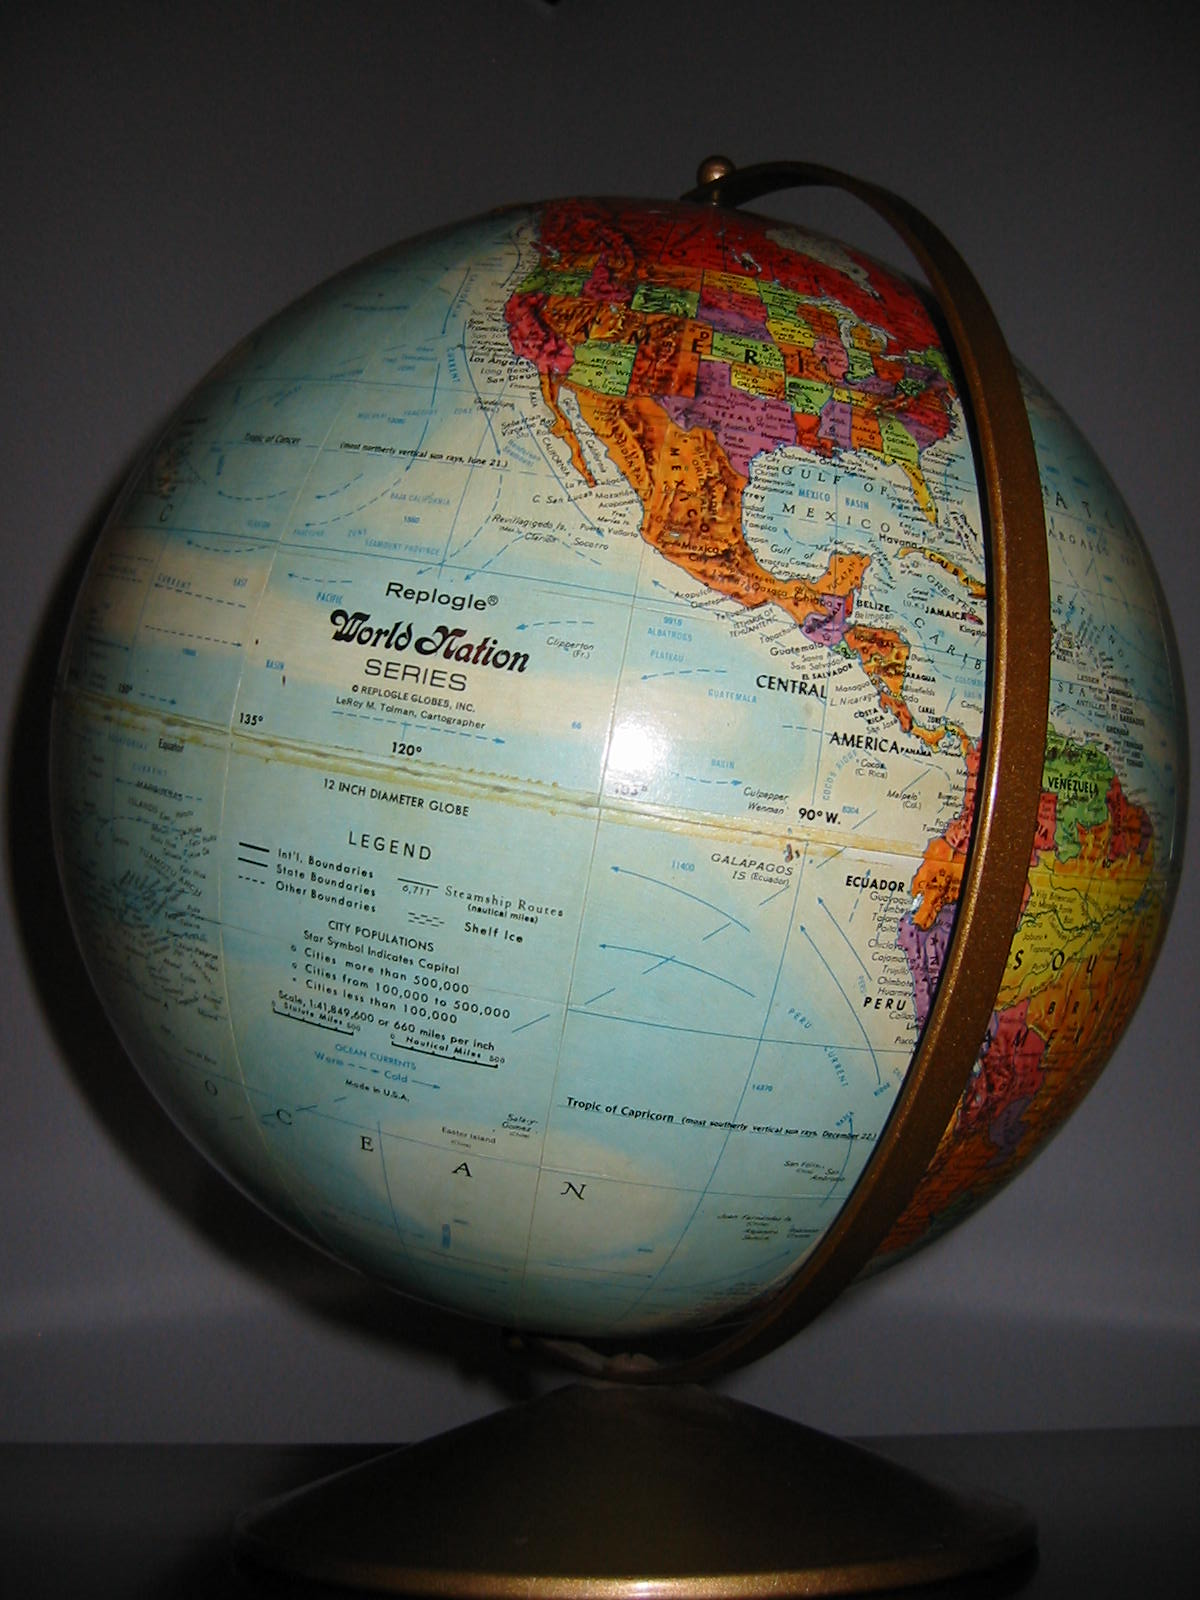 Replogle World Motion Series 12 Desktop Globe In Relief Colorful Paper Mache Metal Stand Held By Belt Old Country Names Yugoslavia